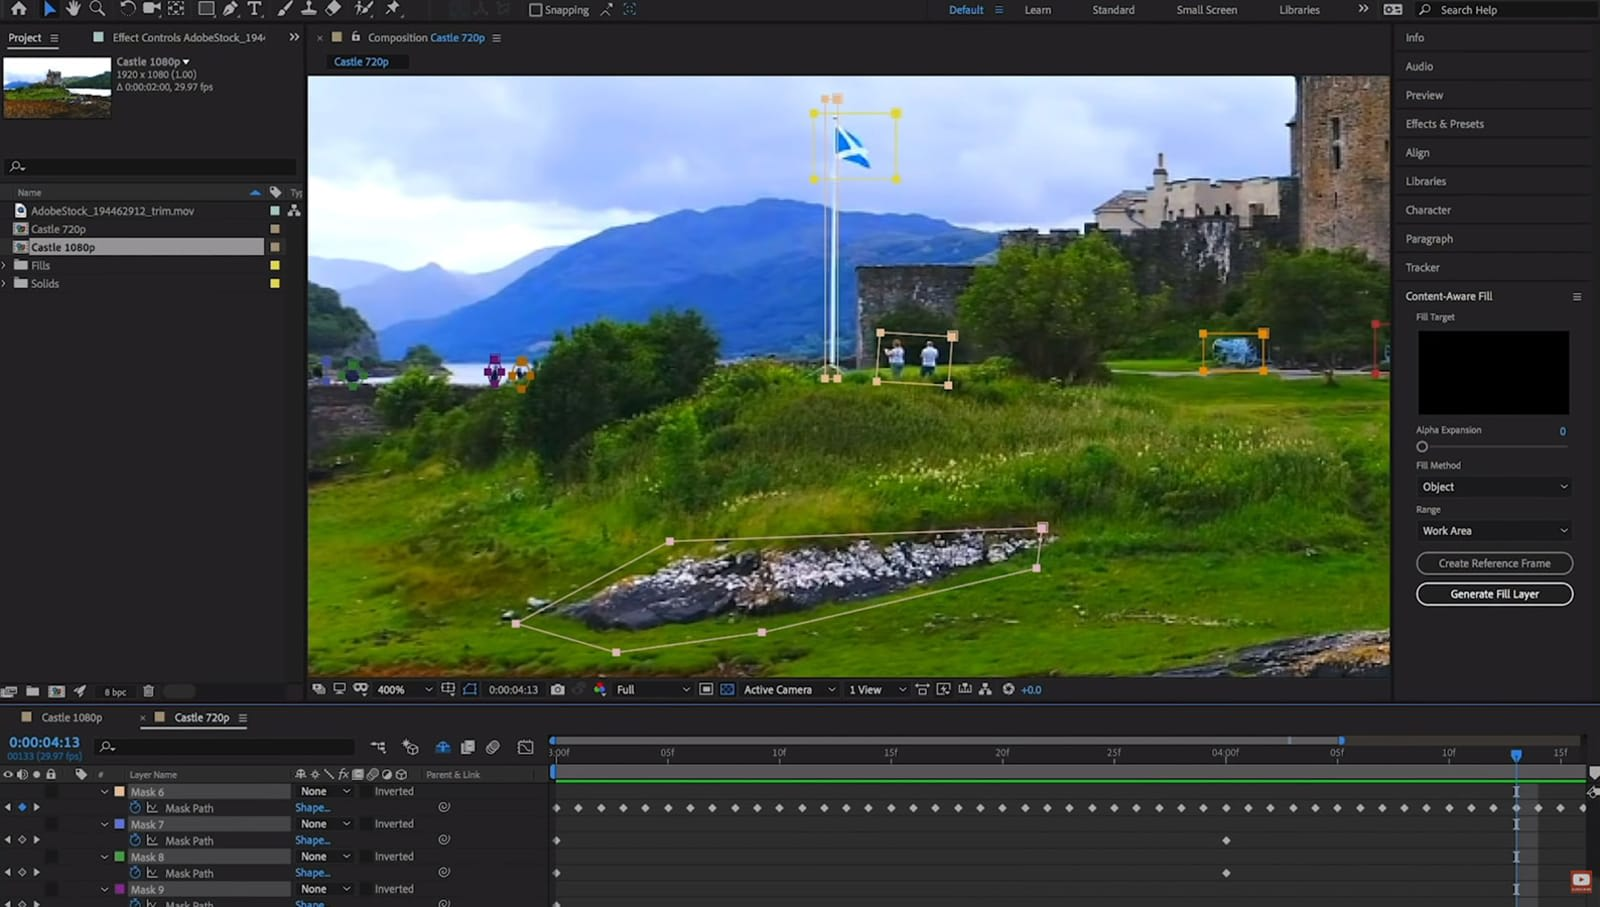 Adobe's After Effects can erase unwanted objects from your